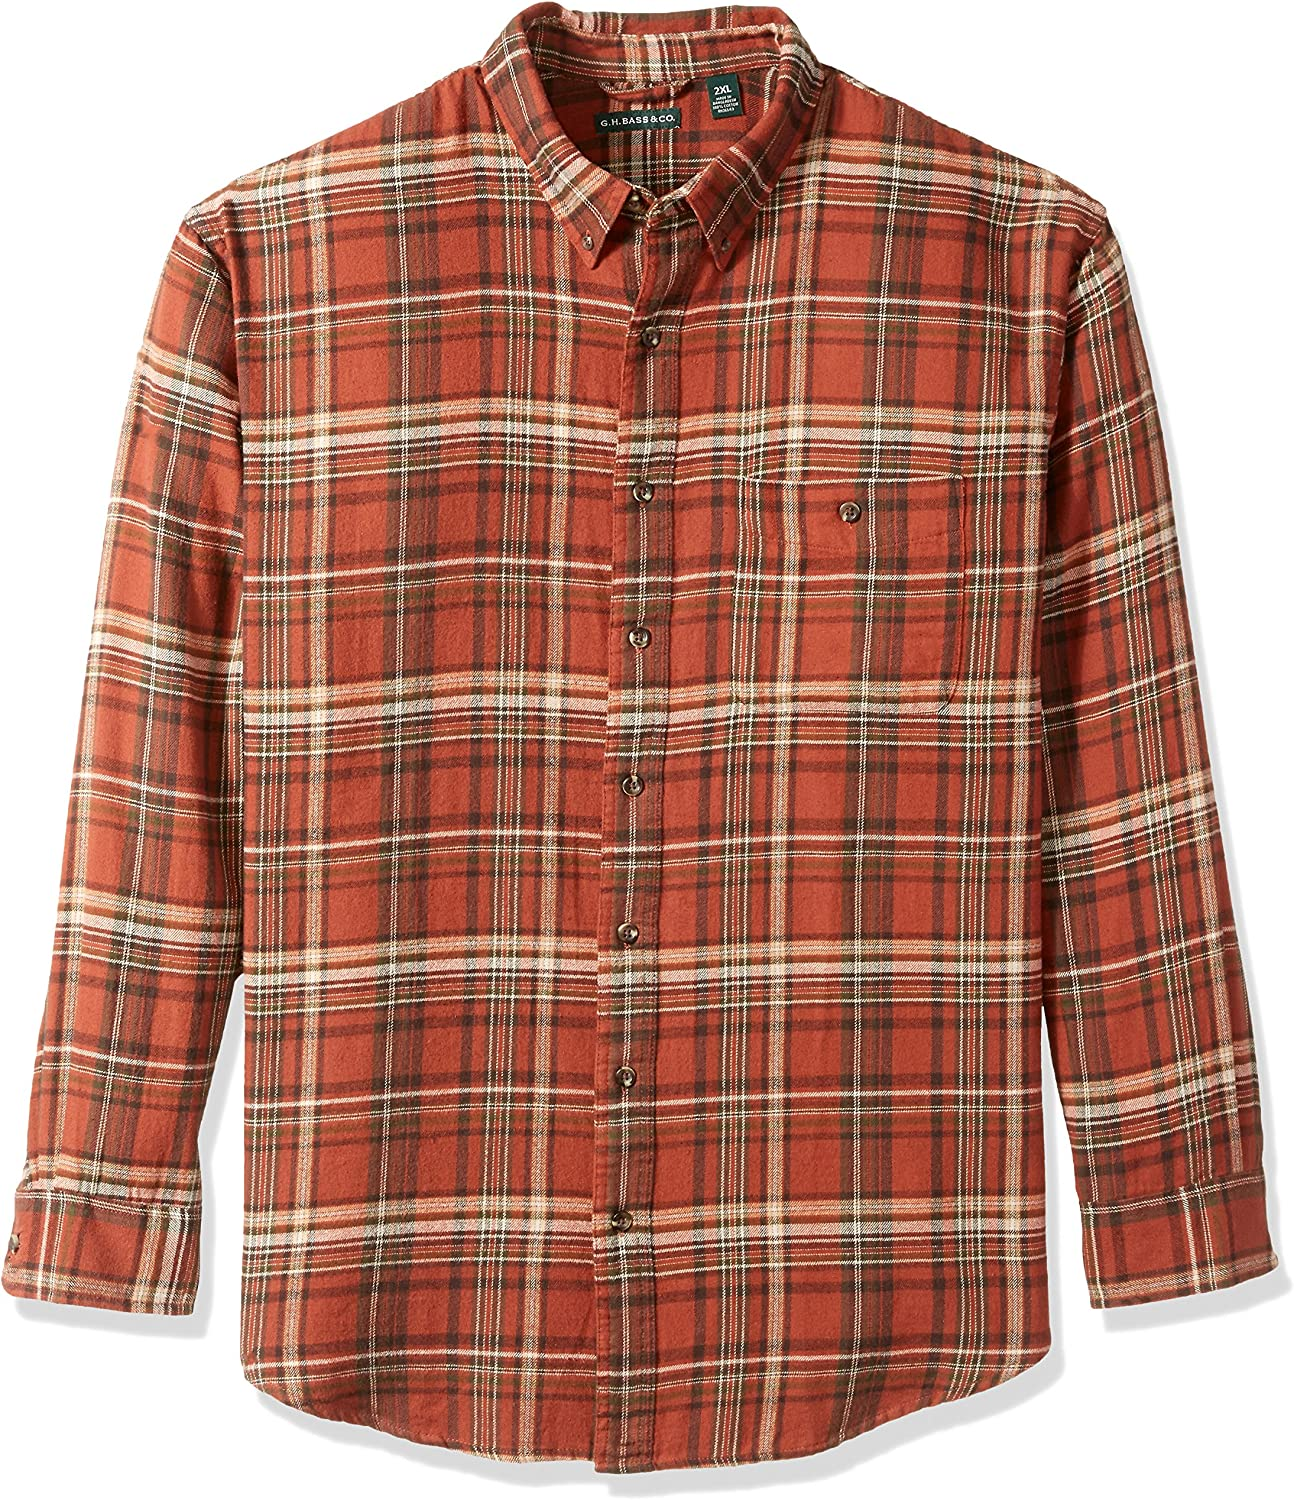 Bass /& Co Mens Big-Tall Big and Tall Fireside Flannel Plaid Long Sleeve Shirt G.H